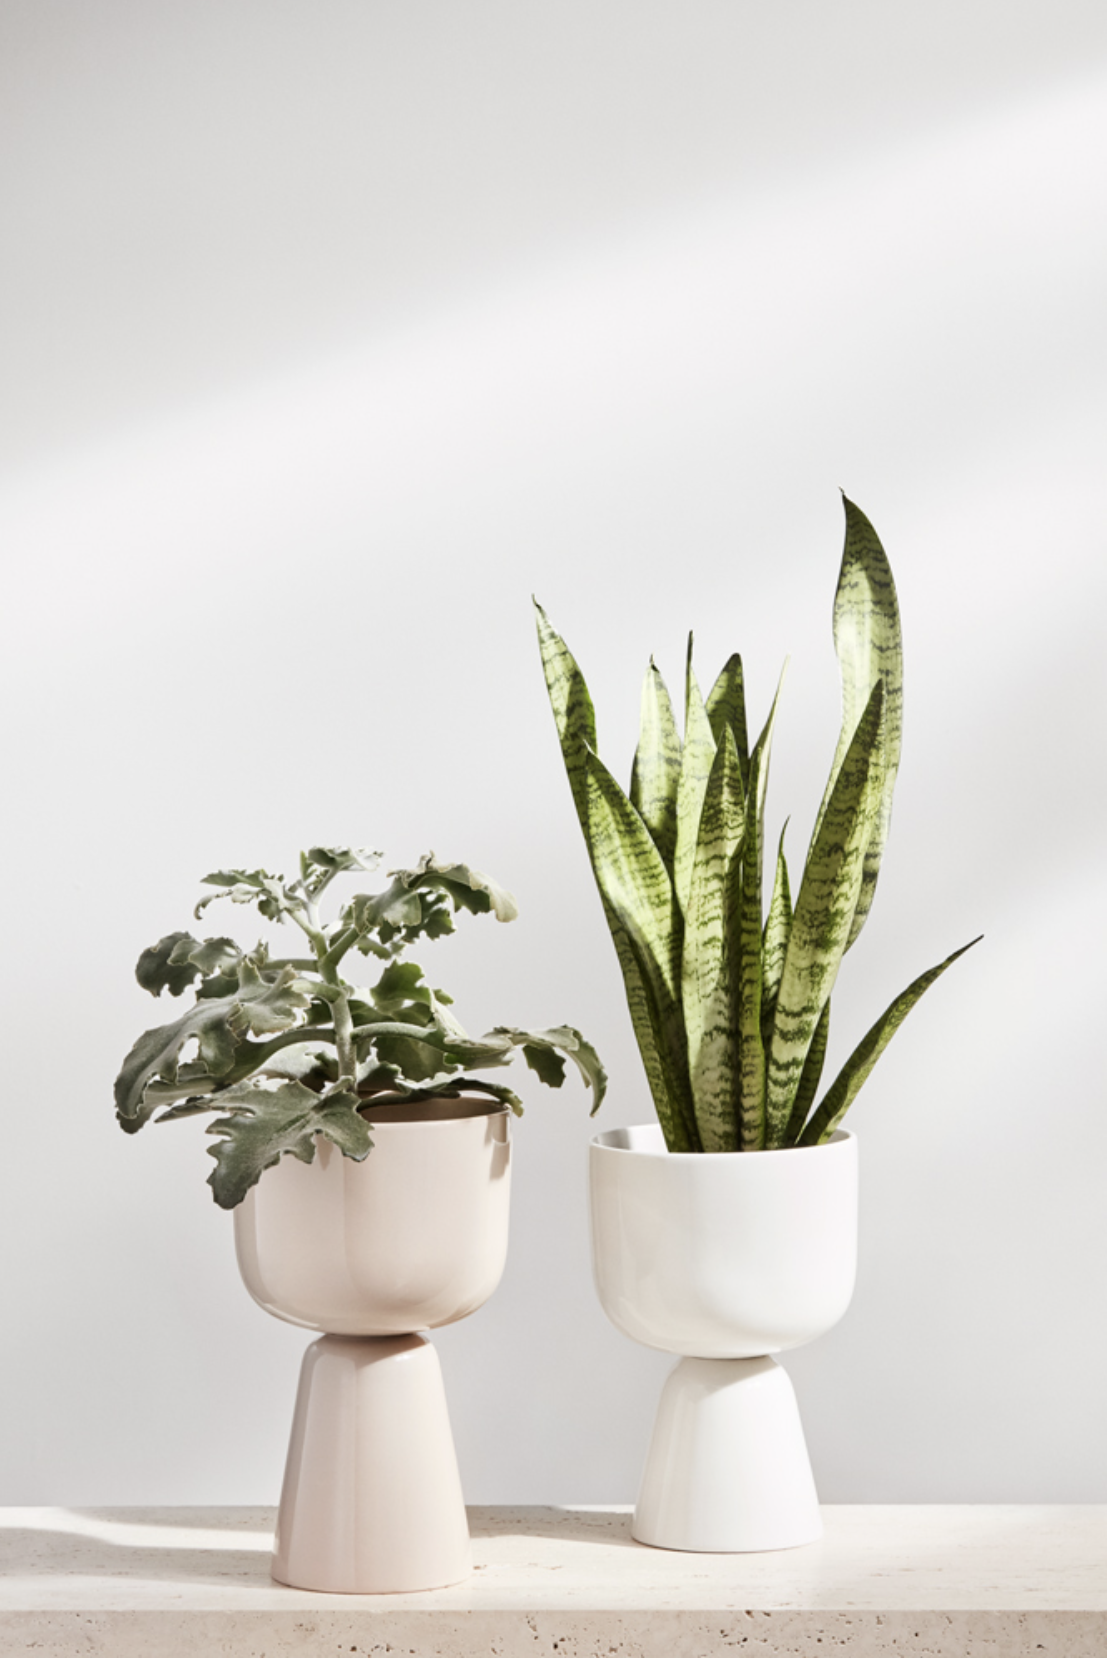 Iittala Spring 2020 for Iittala by Susanna Vento